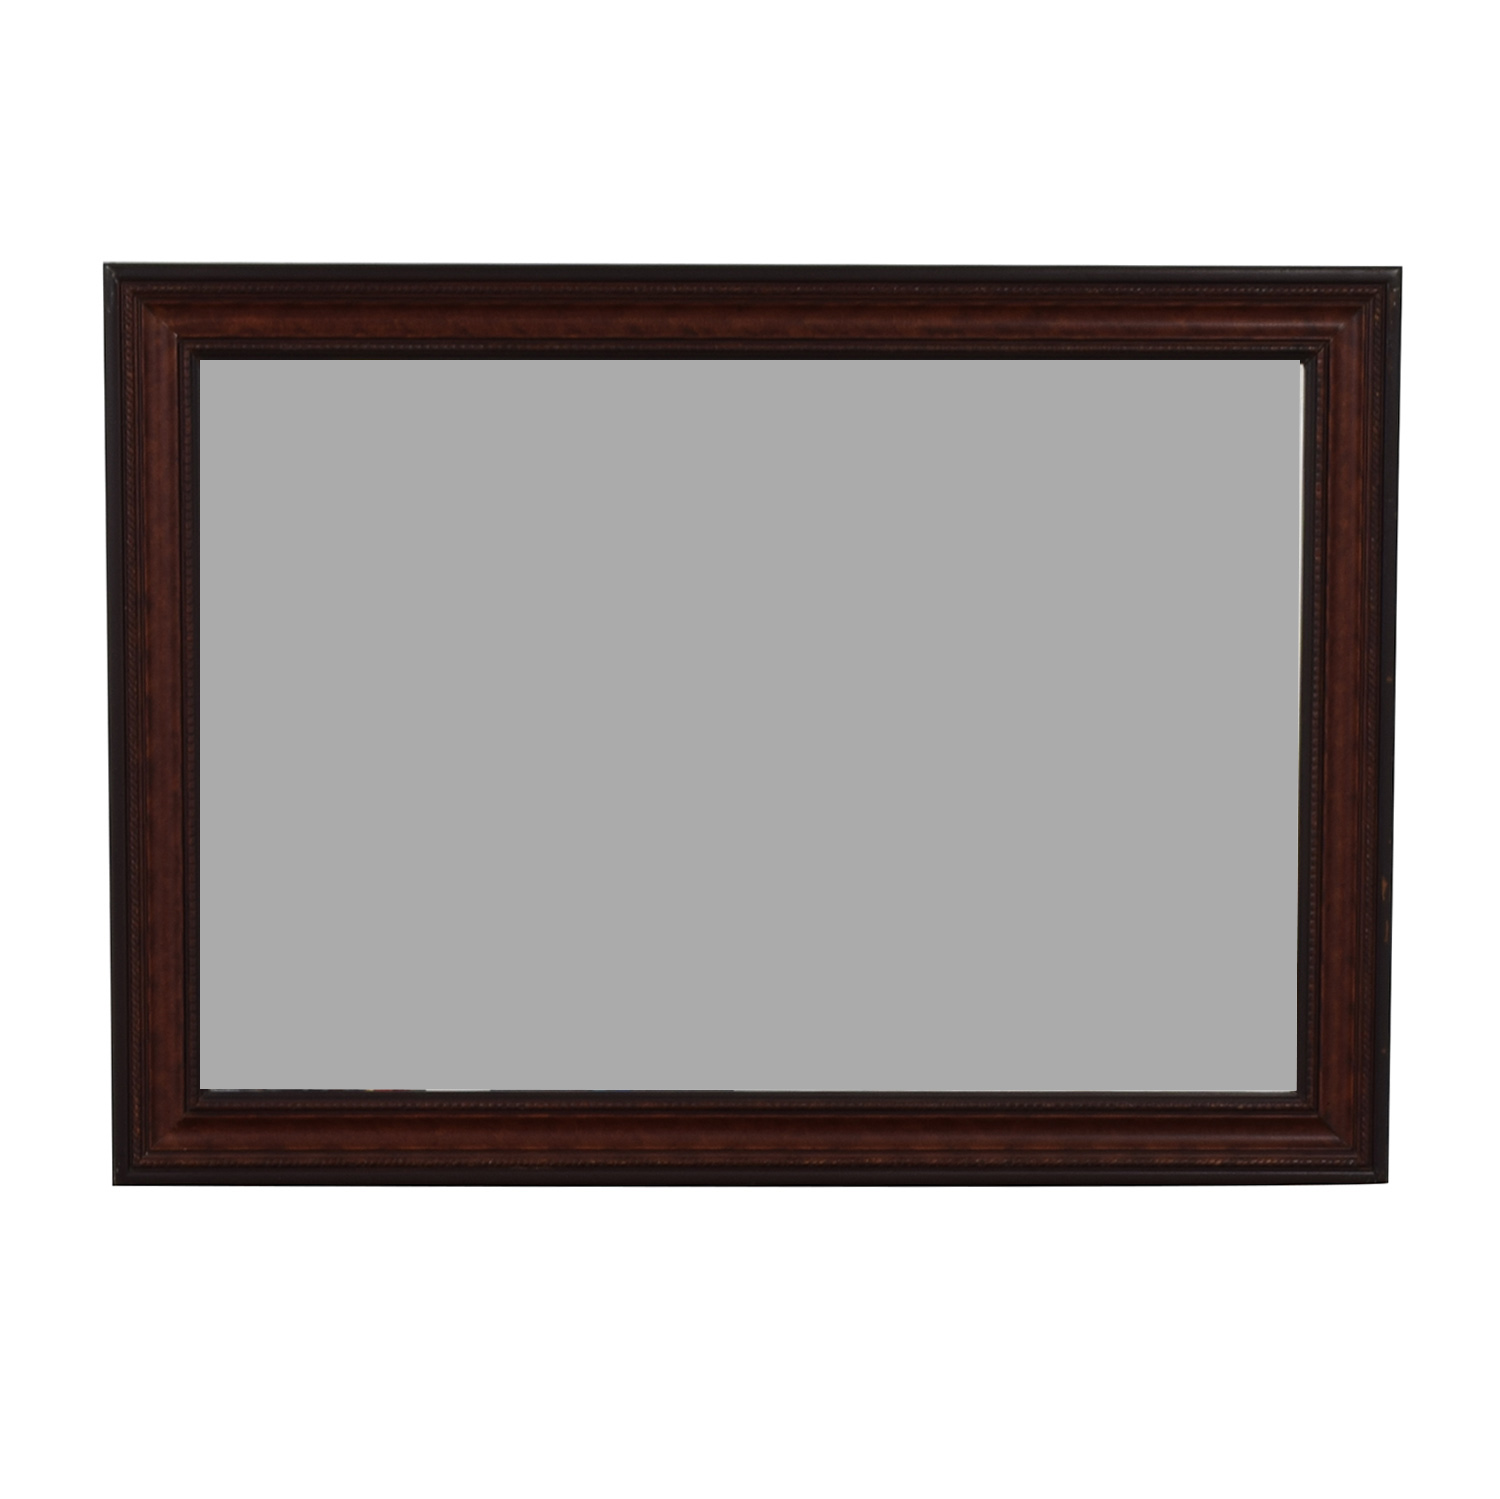 shop Wood Framed Wall Mirror